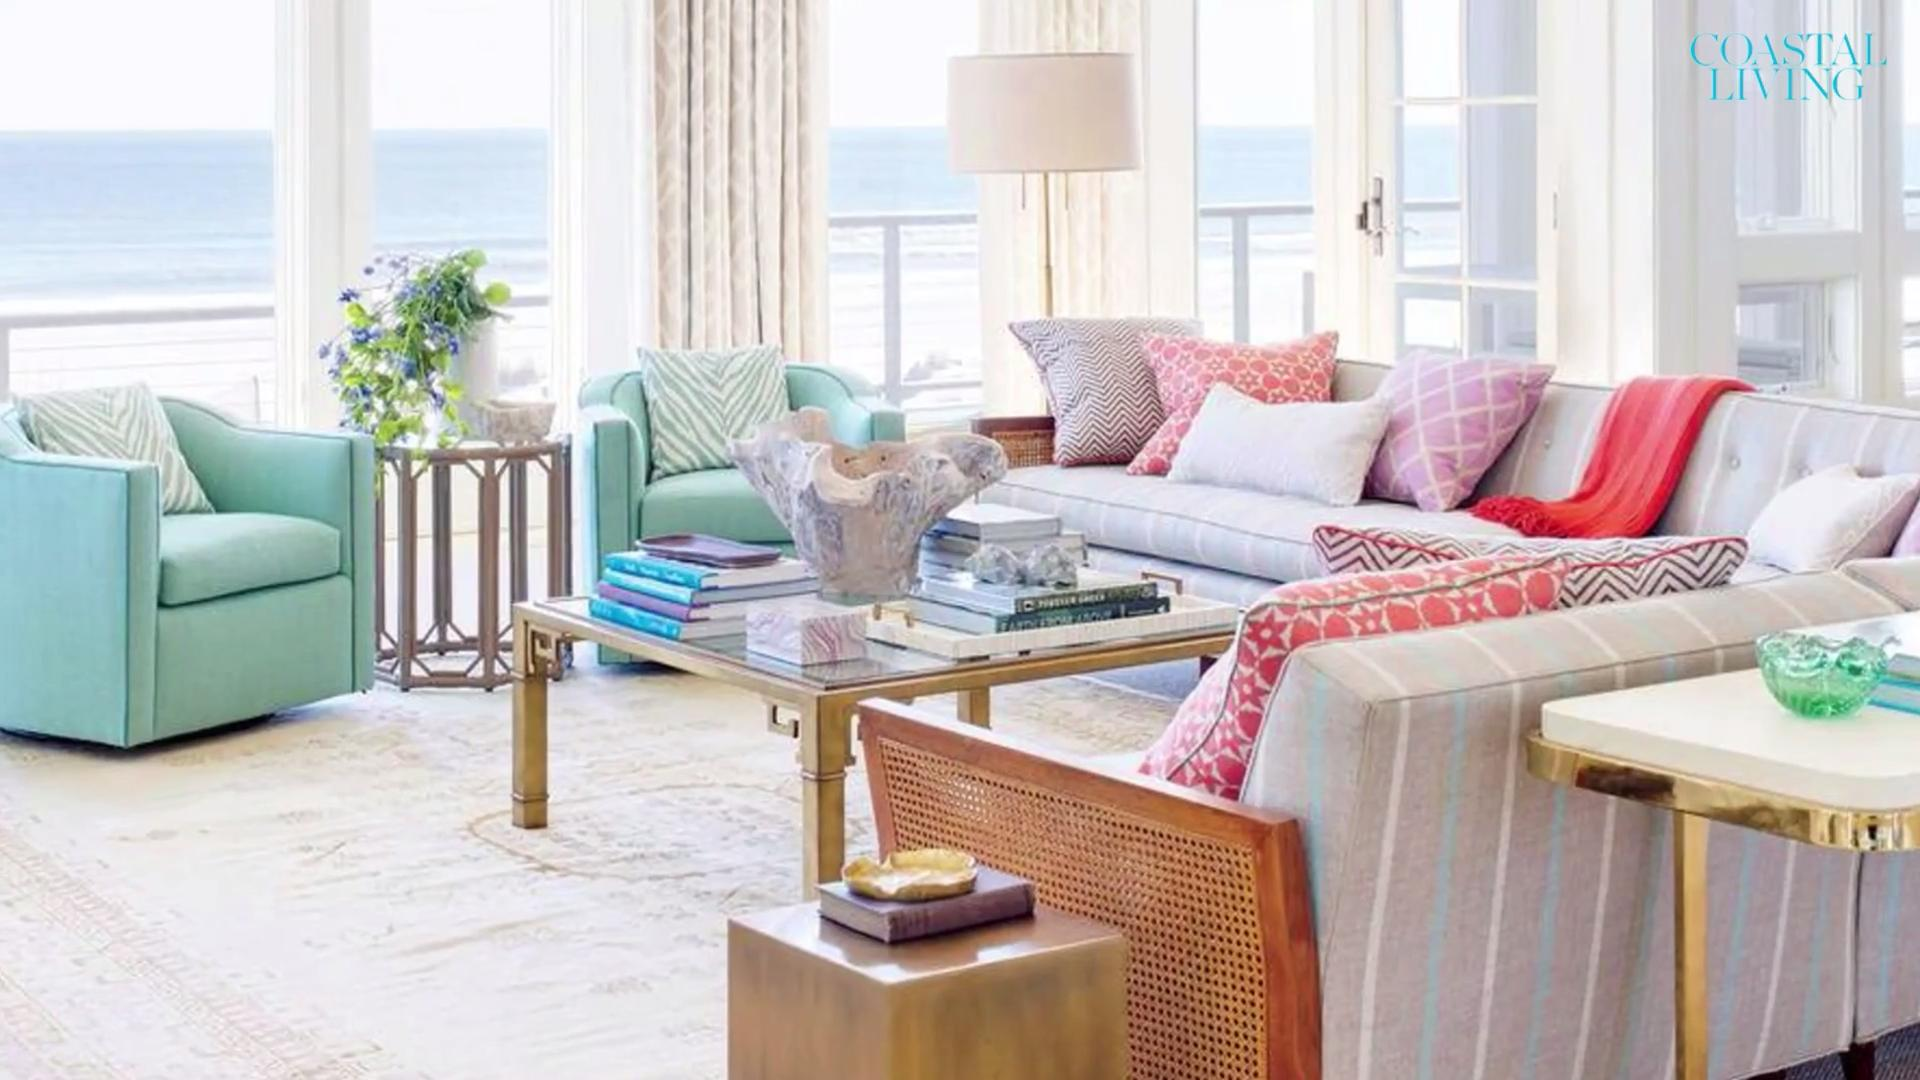 farmhouse decor farmhouse style living room decor split apartment style ideas modern These Living Rooms Have Bright, Coastal Style